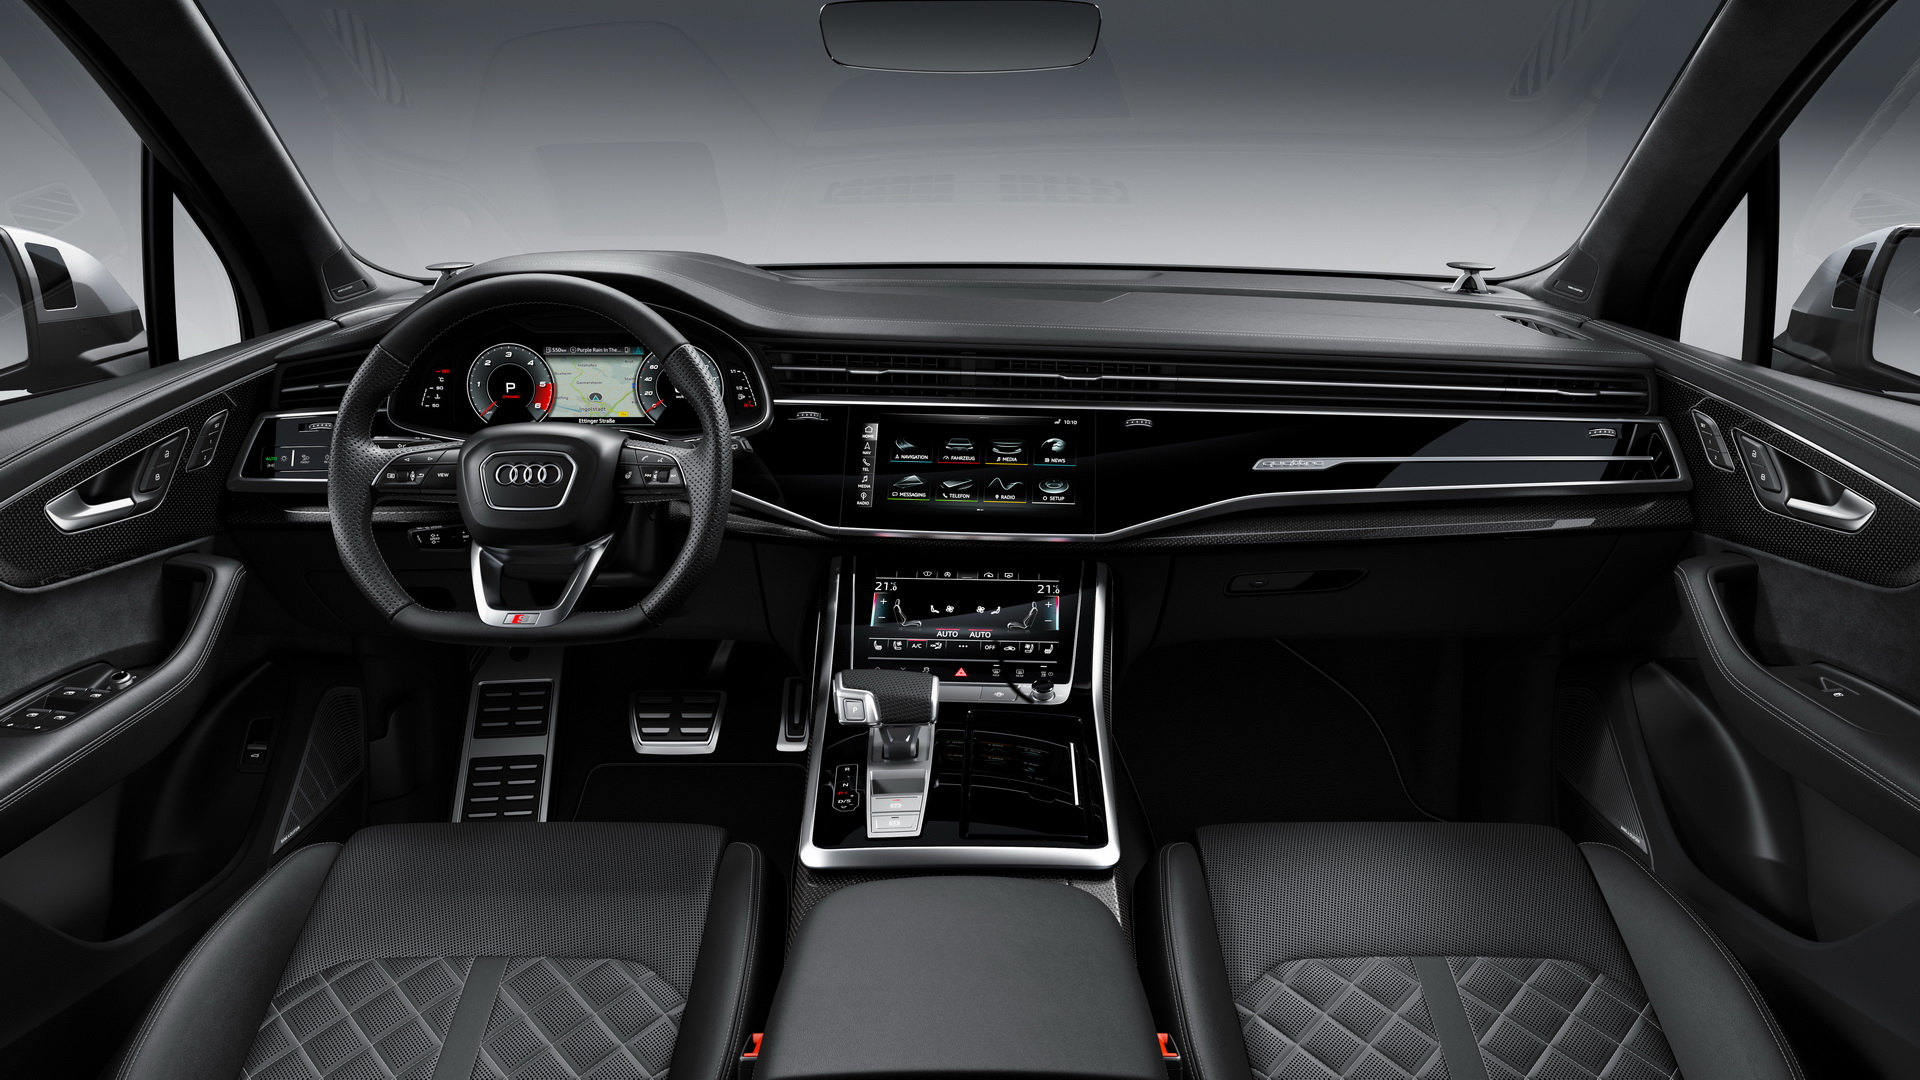 Diesel-powered Audi SQ7 debuts in Europe